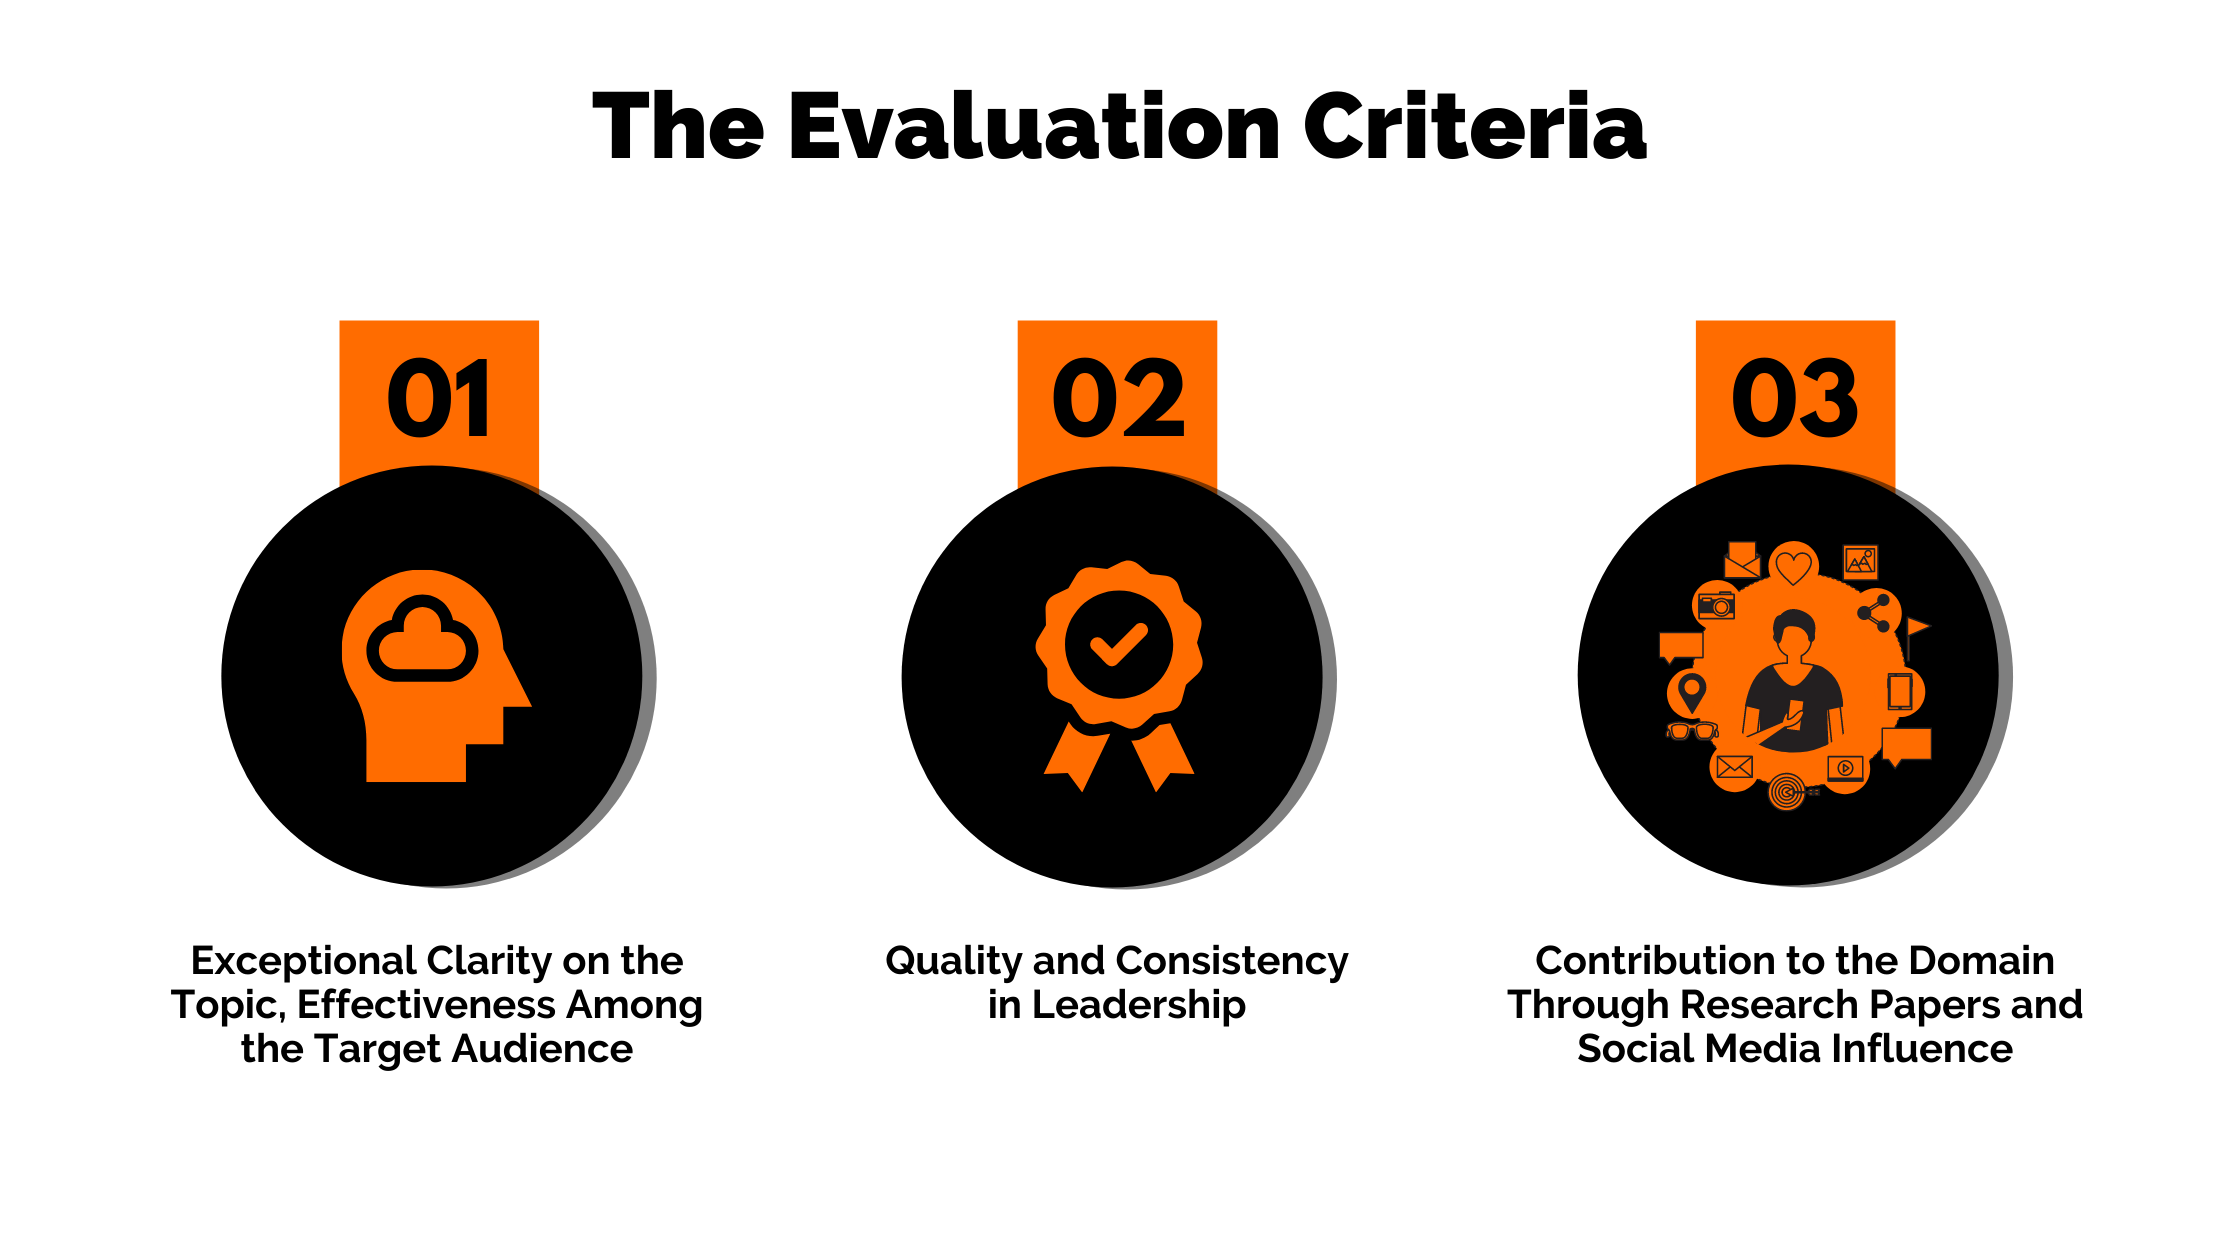 Whizlabs Global Thought Leader - The Evaluation Criteria